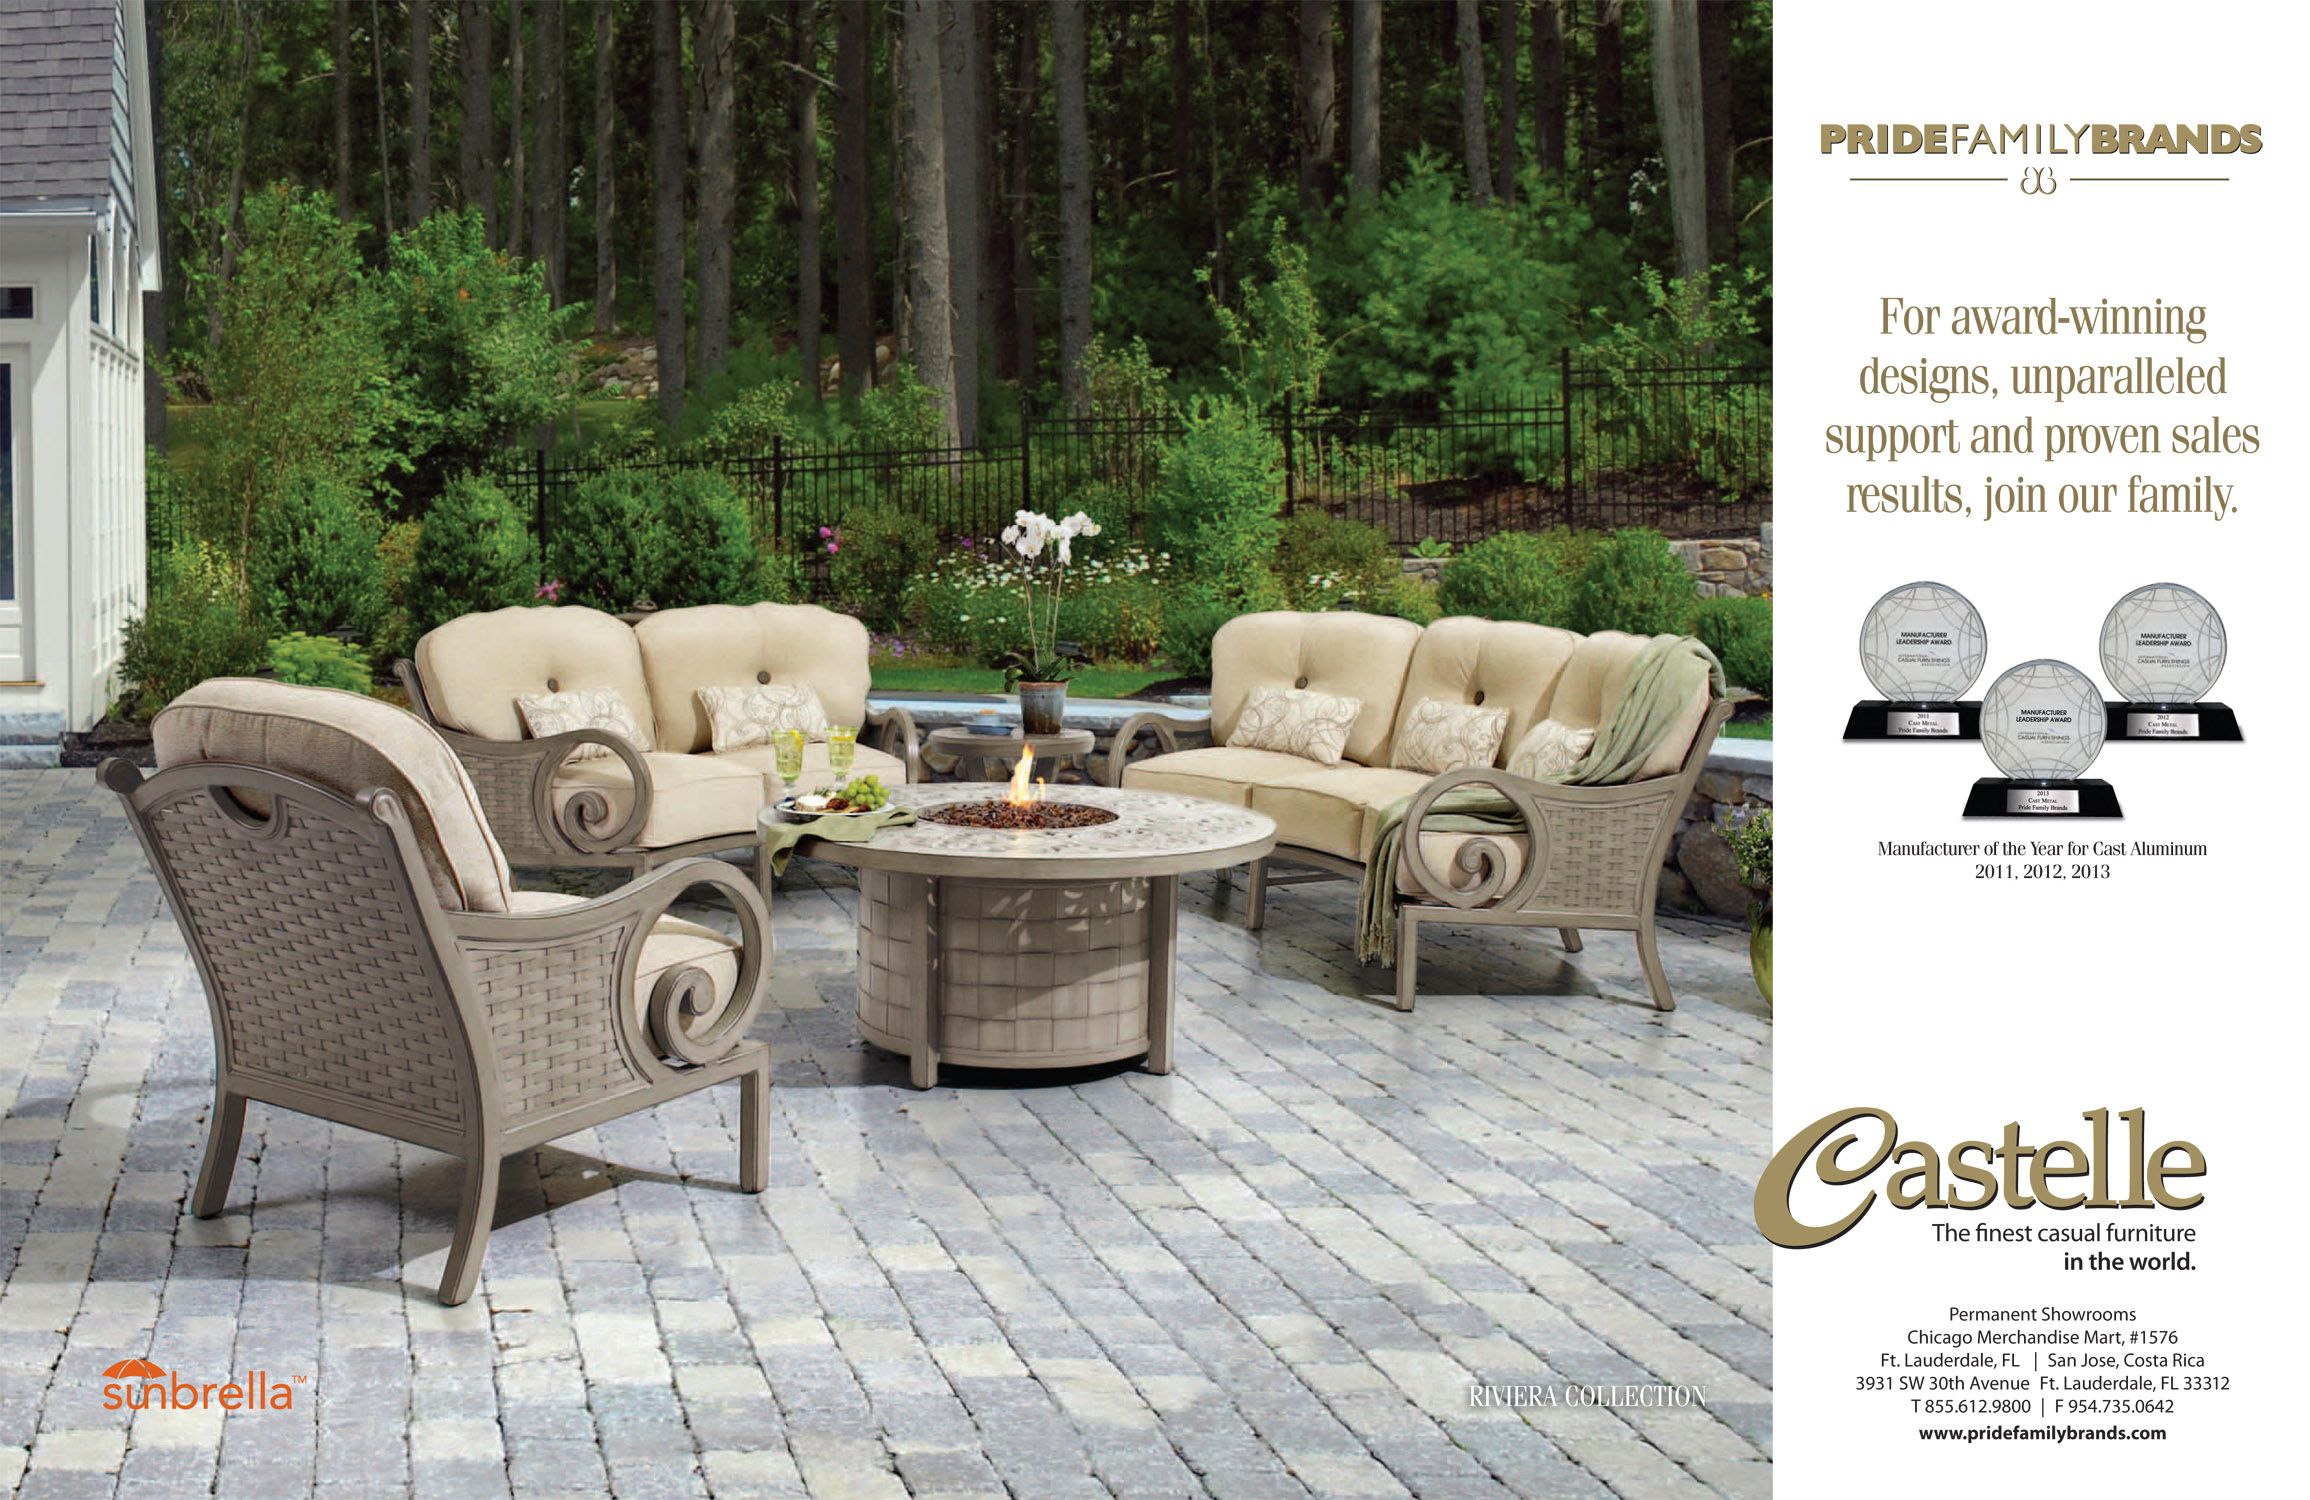 the riviera collection featured in pride family brands advertising wwwpridefamilybrandscom